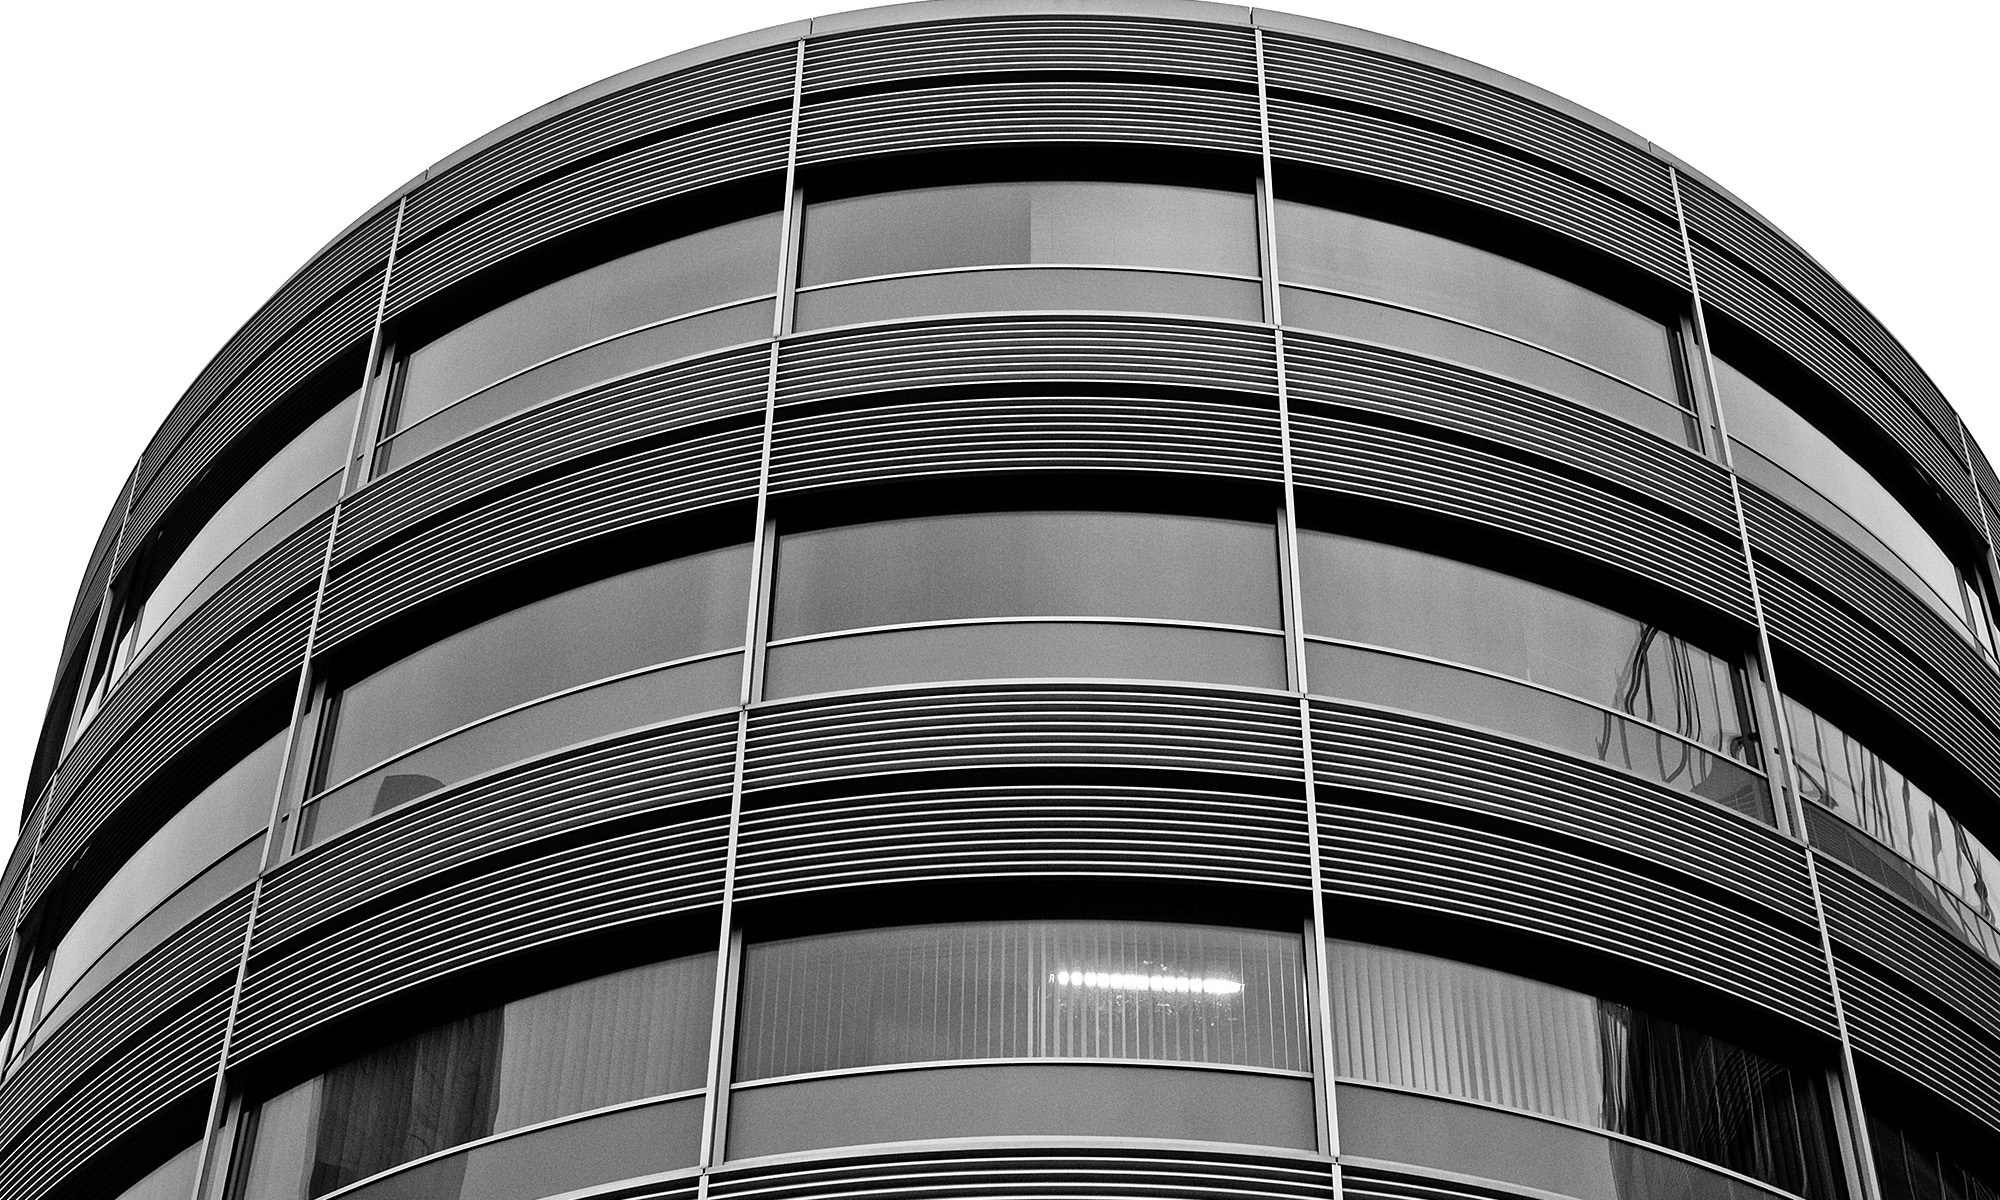 Curved Office Building, Spinningfields, Manchester